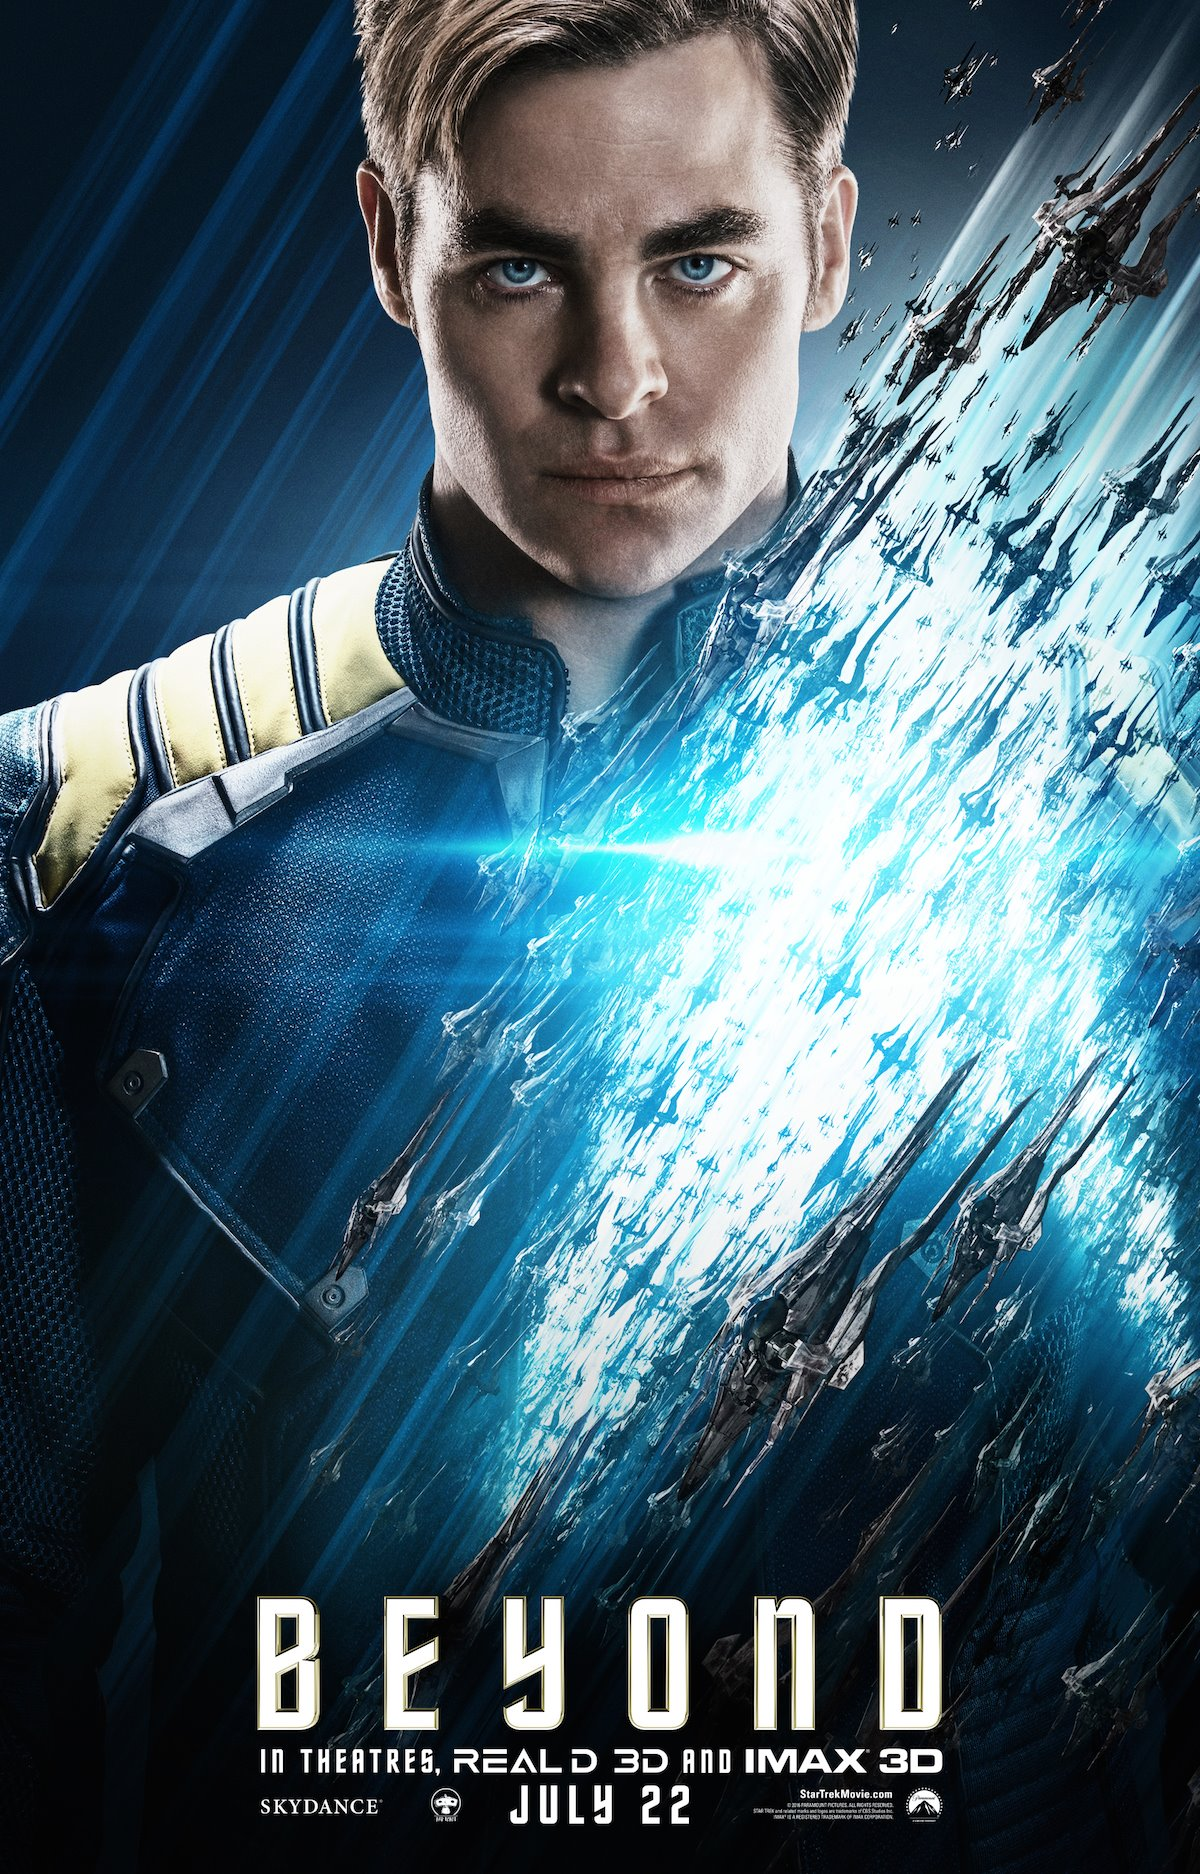 https://i1.wp.com/cdn3-www.superherohype.com/assets/uploads/gallery/star-trek-beyond/13301471_10153687198223716_4414900814471367992_o.jpg